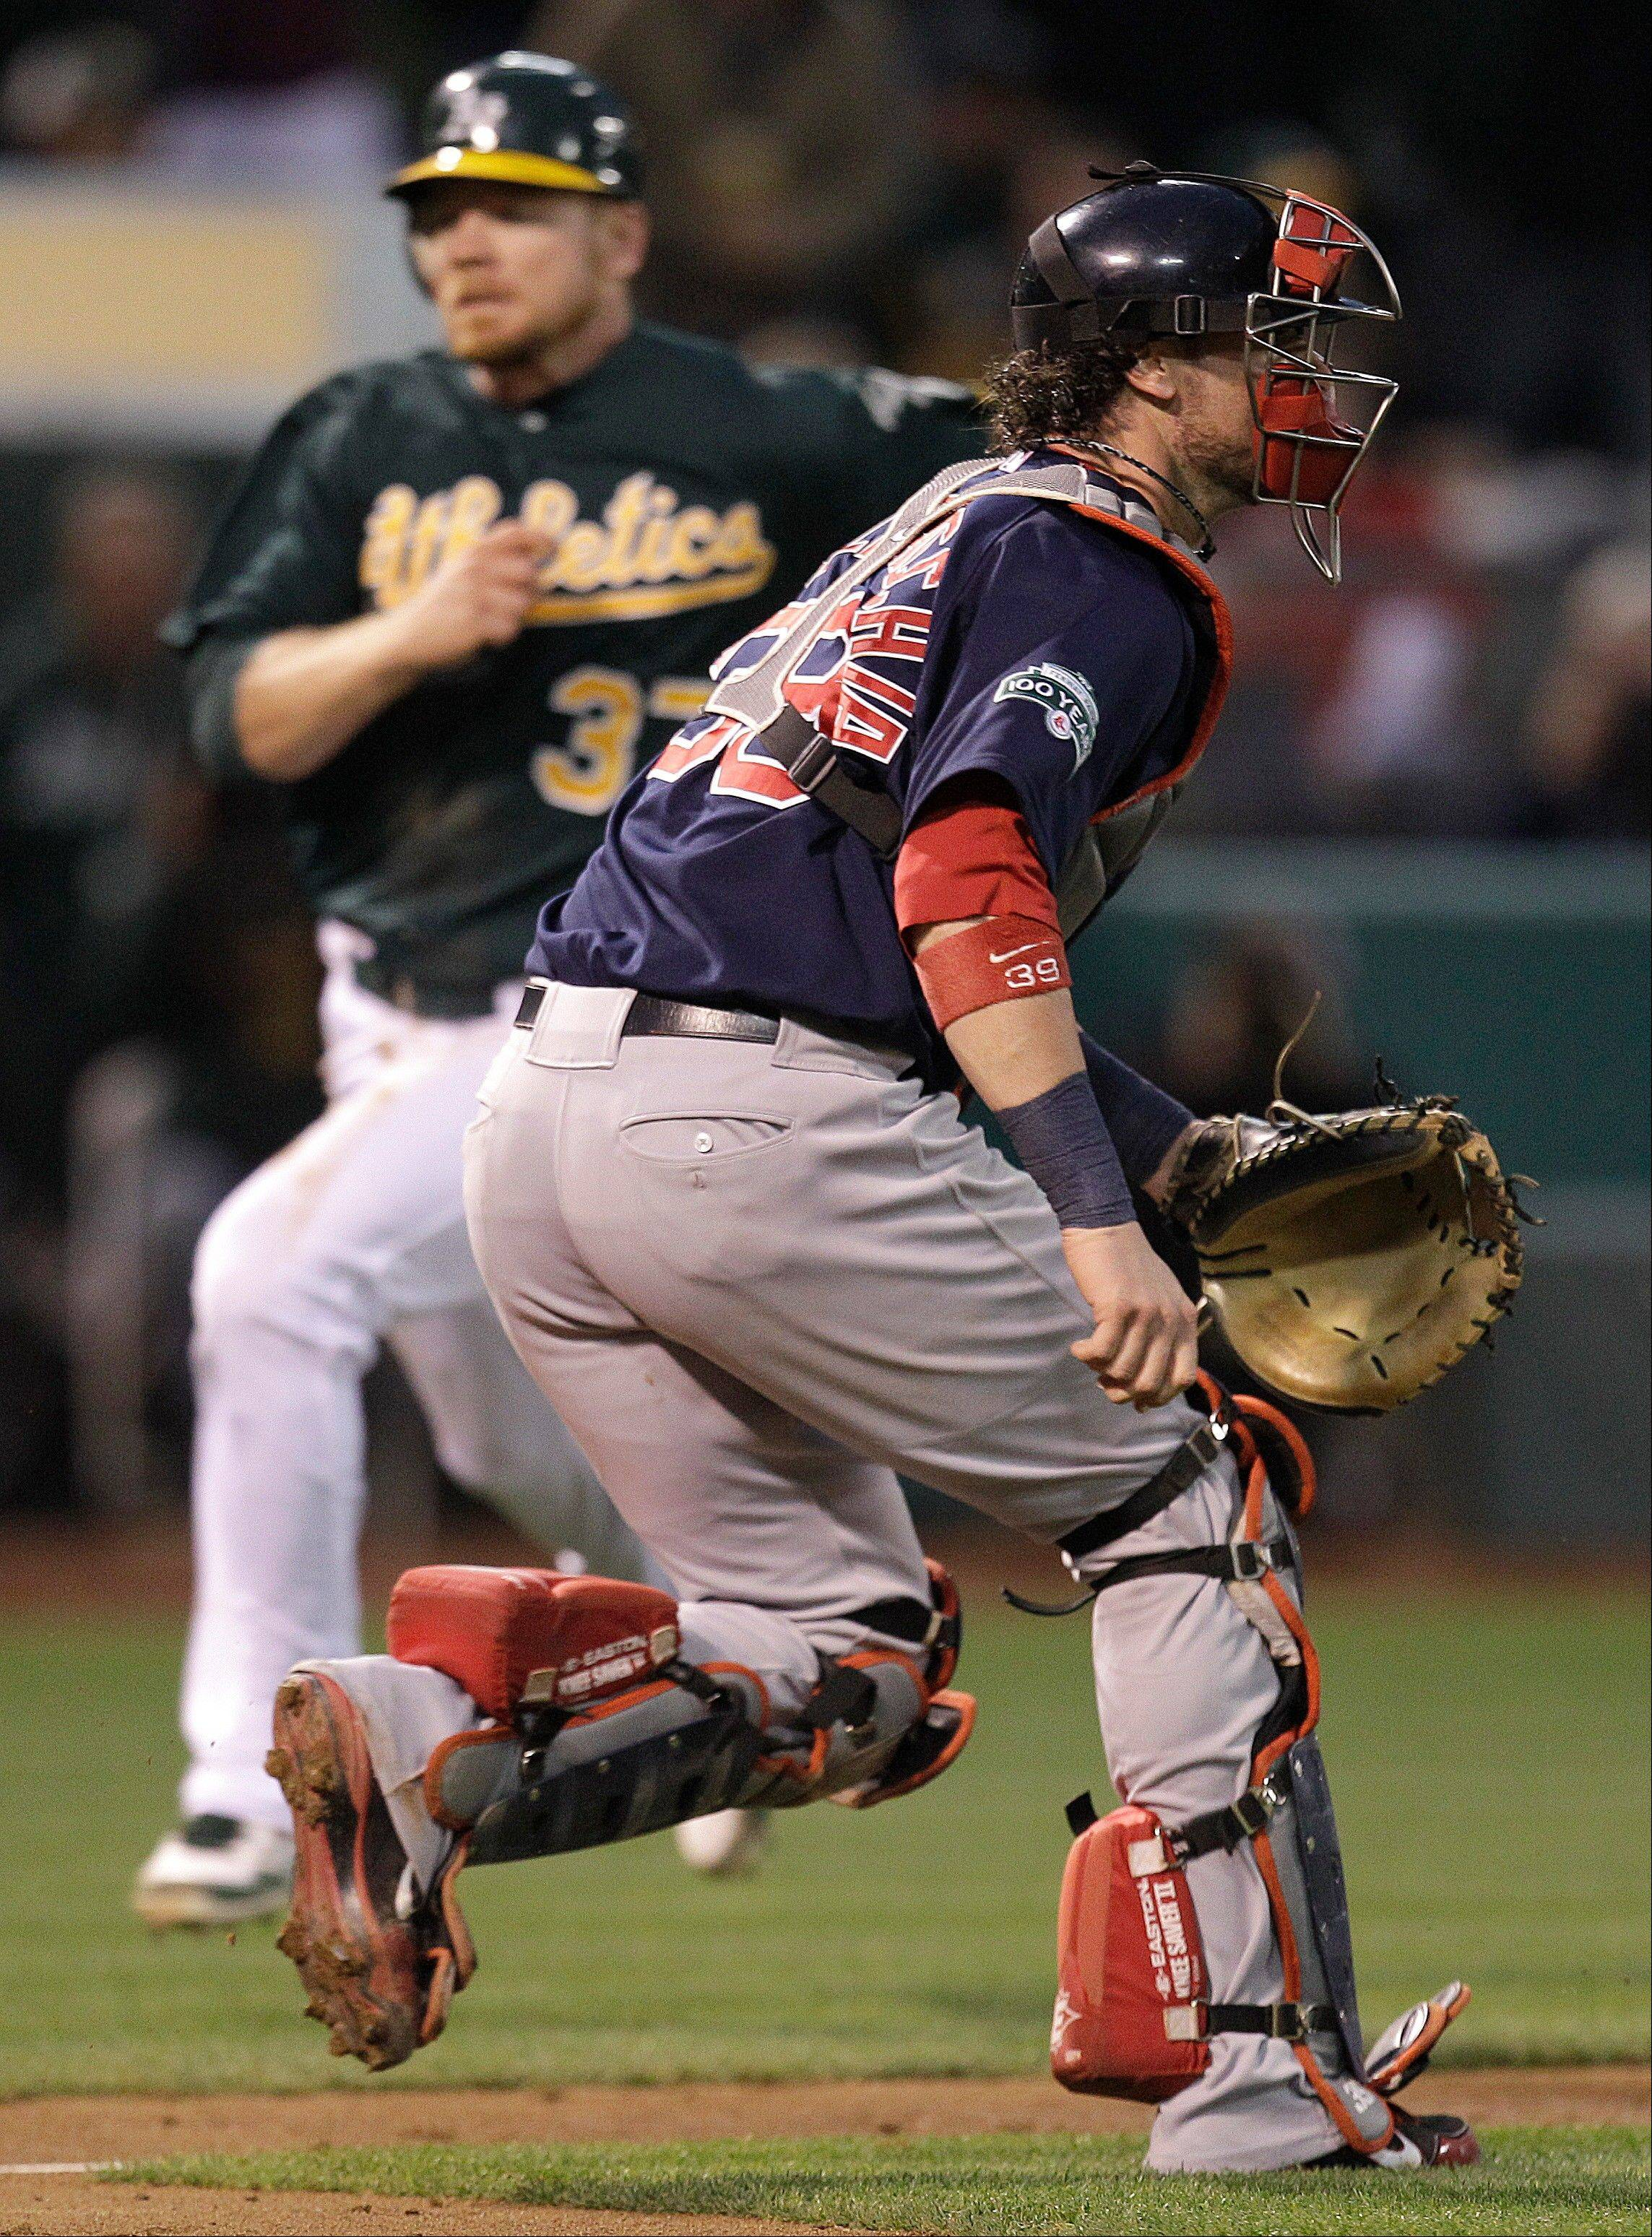 Oakland's Brandon Moss scores as Boston catcher Jarrod Saltalamacchia waits for the ball in the second inning Friday in Oakland, Calif.